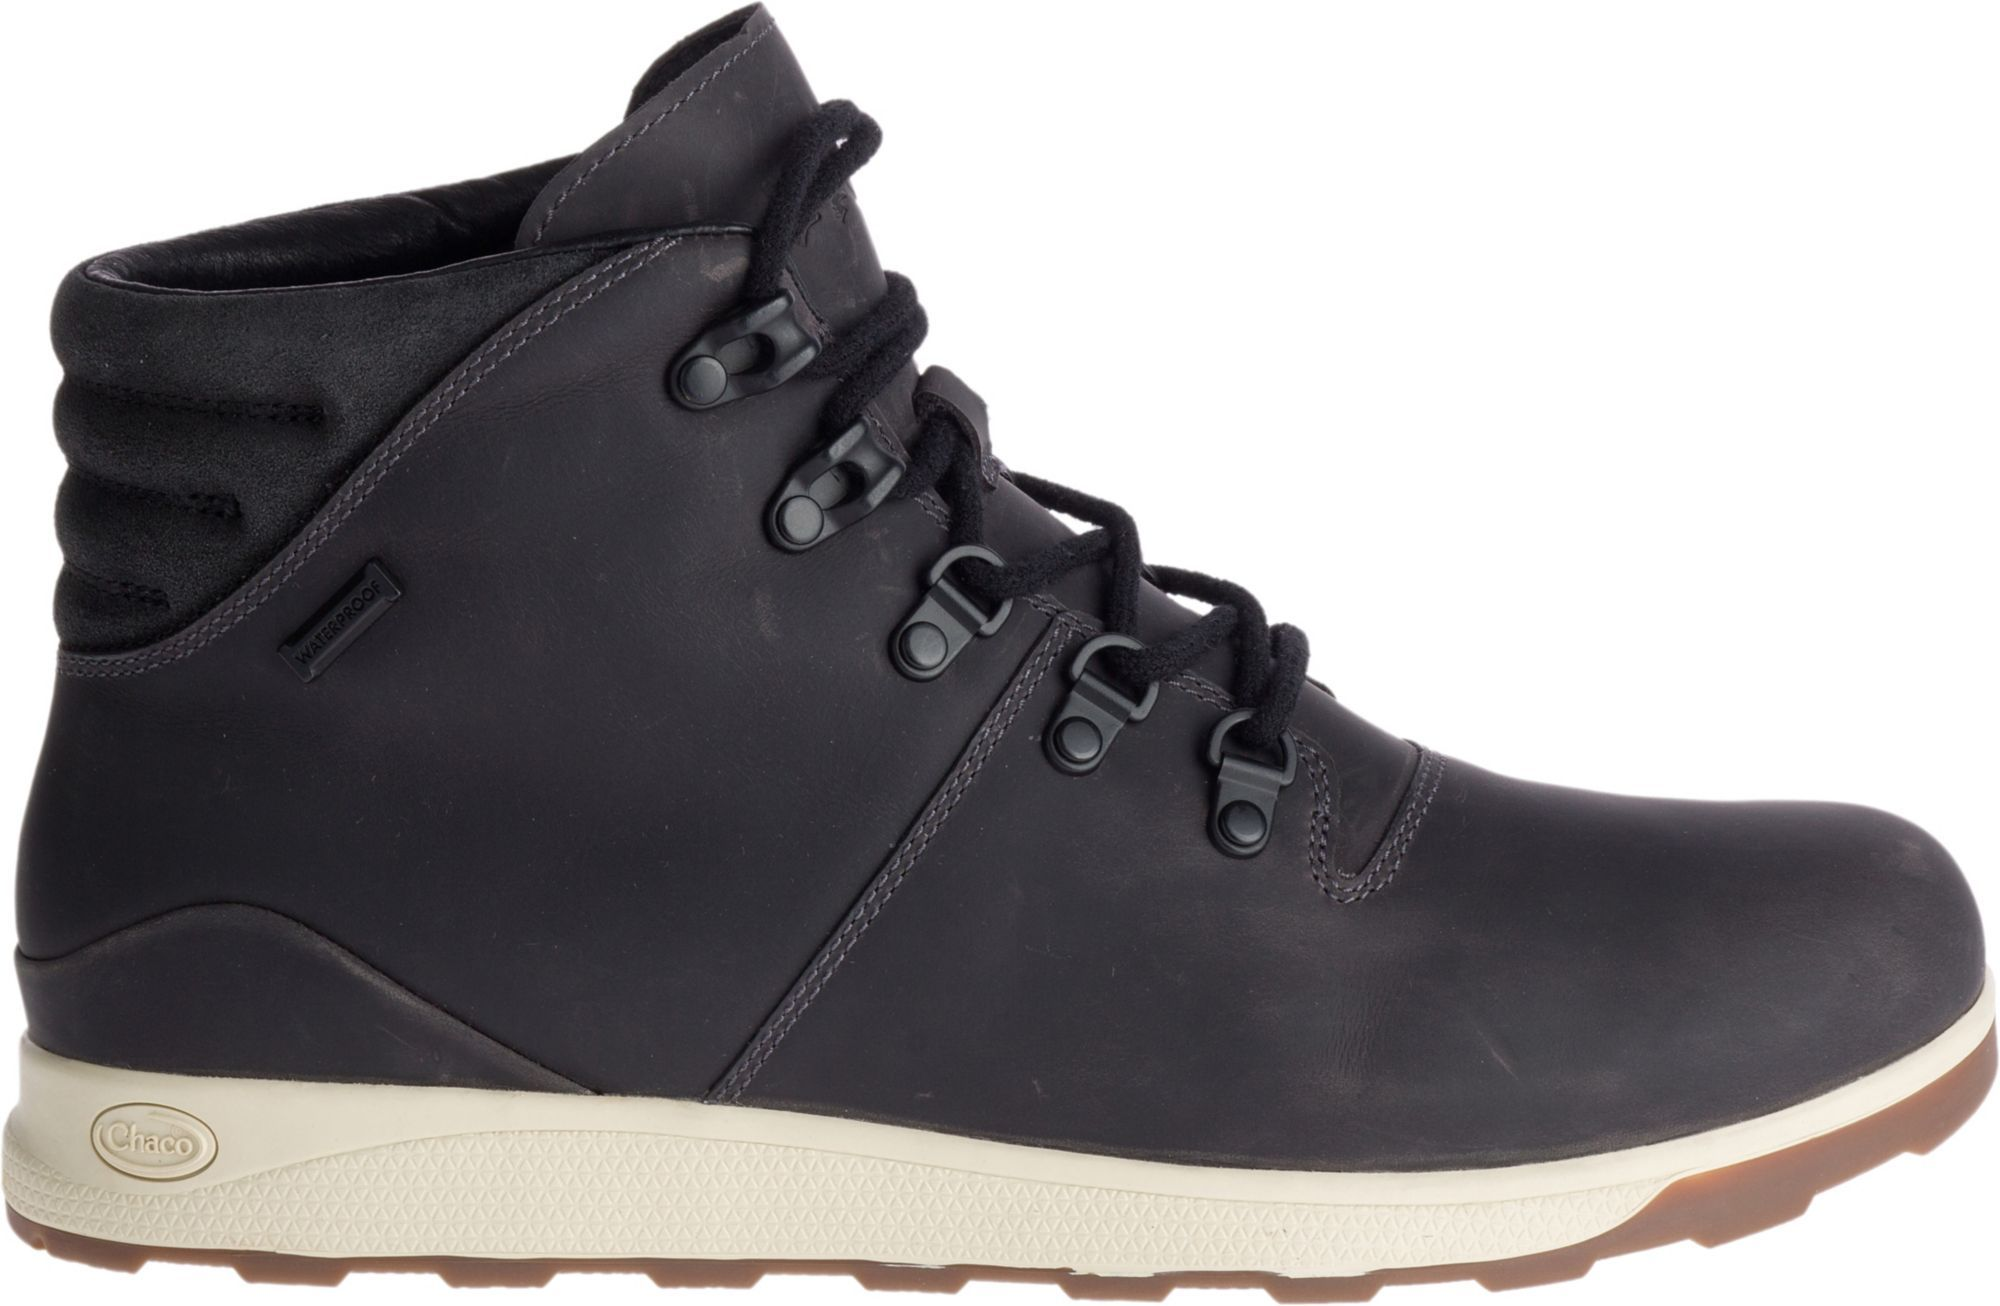 f16fb1a81a71b Chaco Men s Frontier Waterproof Casual Boots